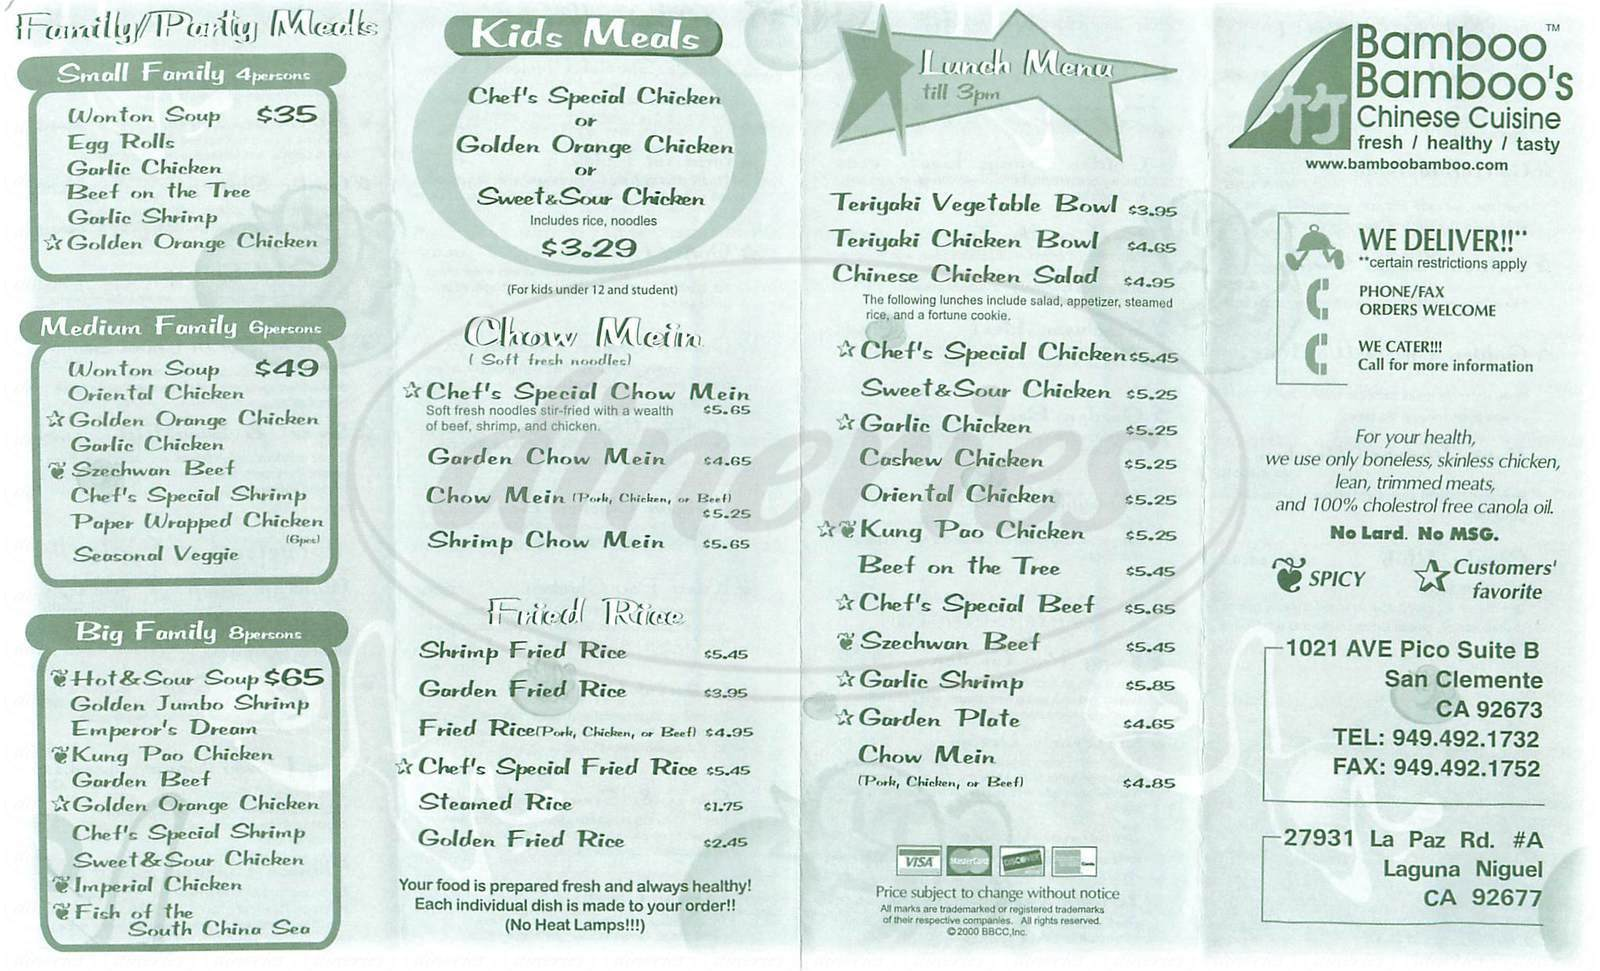 menu for Bamboo Bamboos Chinese Cuisine